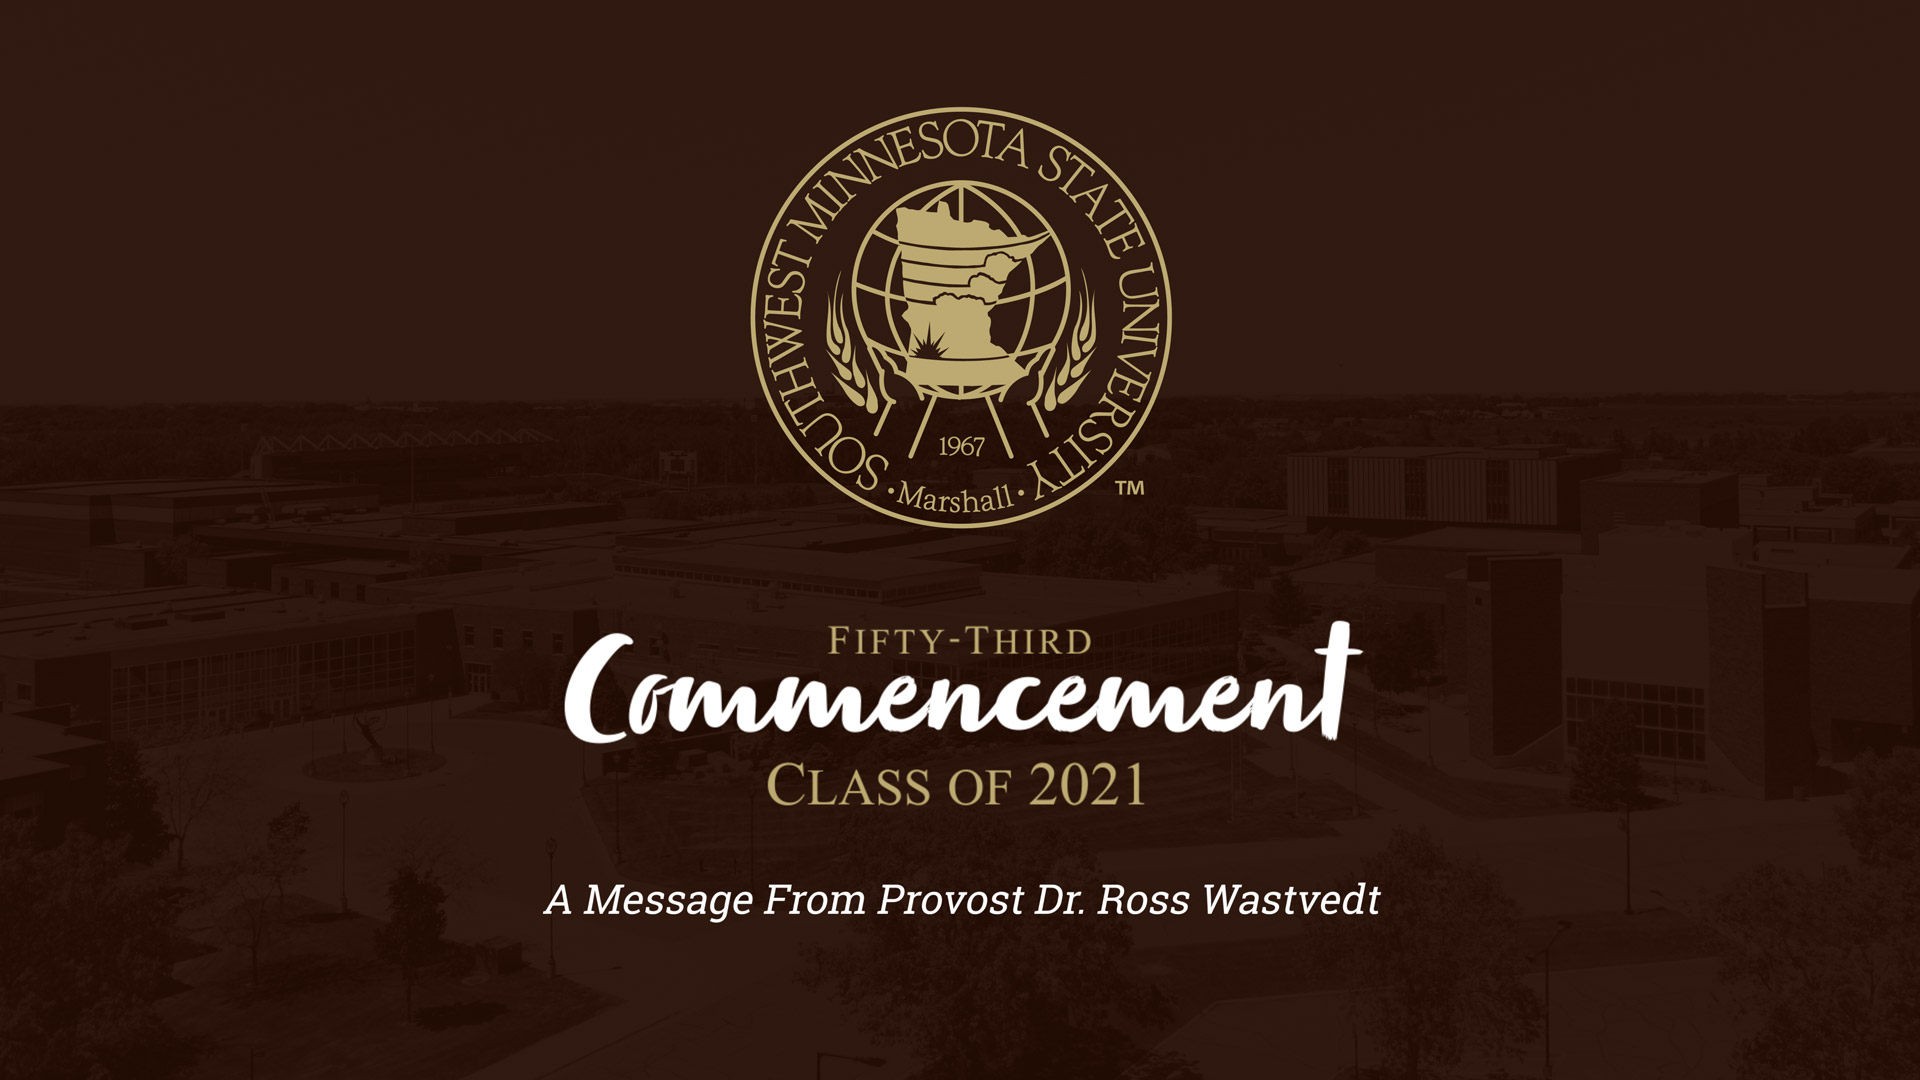 Provost Dr. Ross Wastvedt Commencement Address: Class of 2021